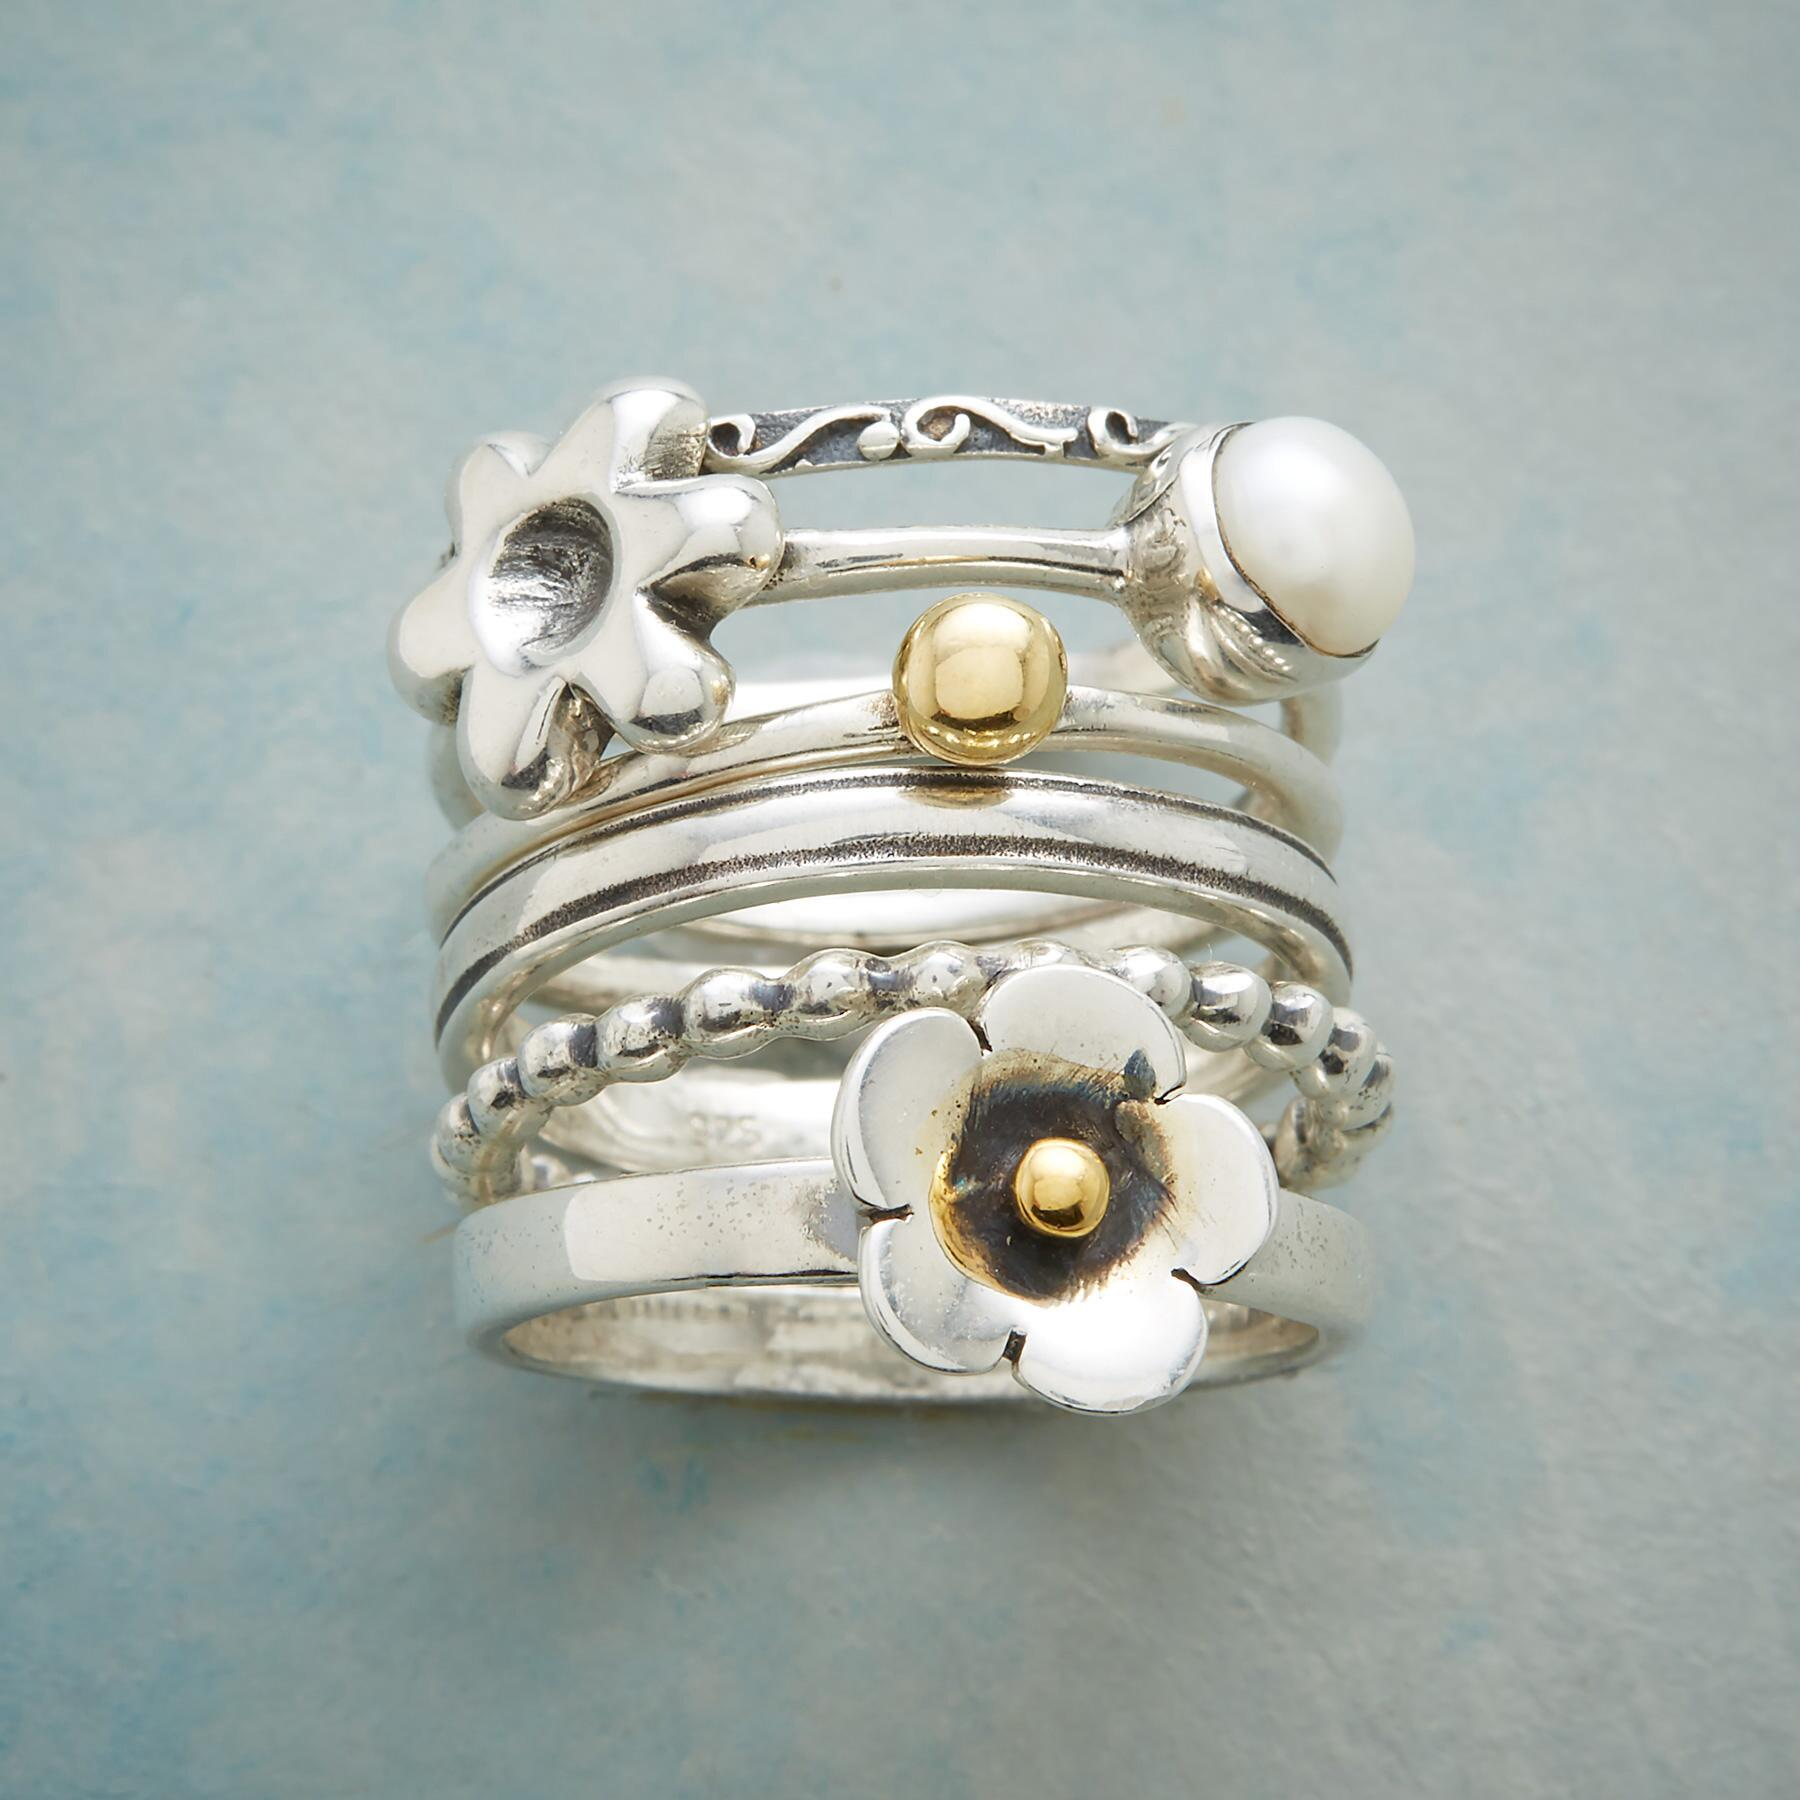 GARDEN OF DELIGHT RINGS: View 1